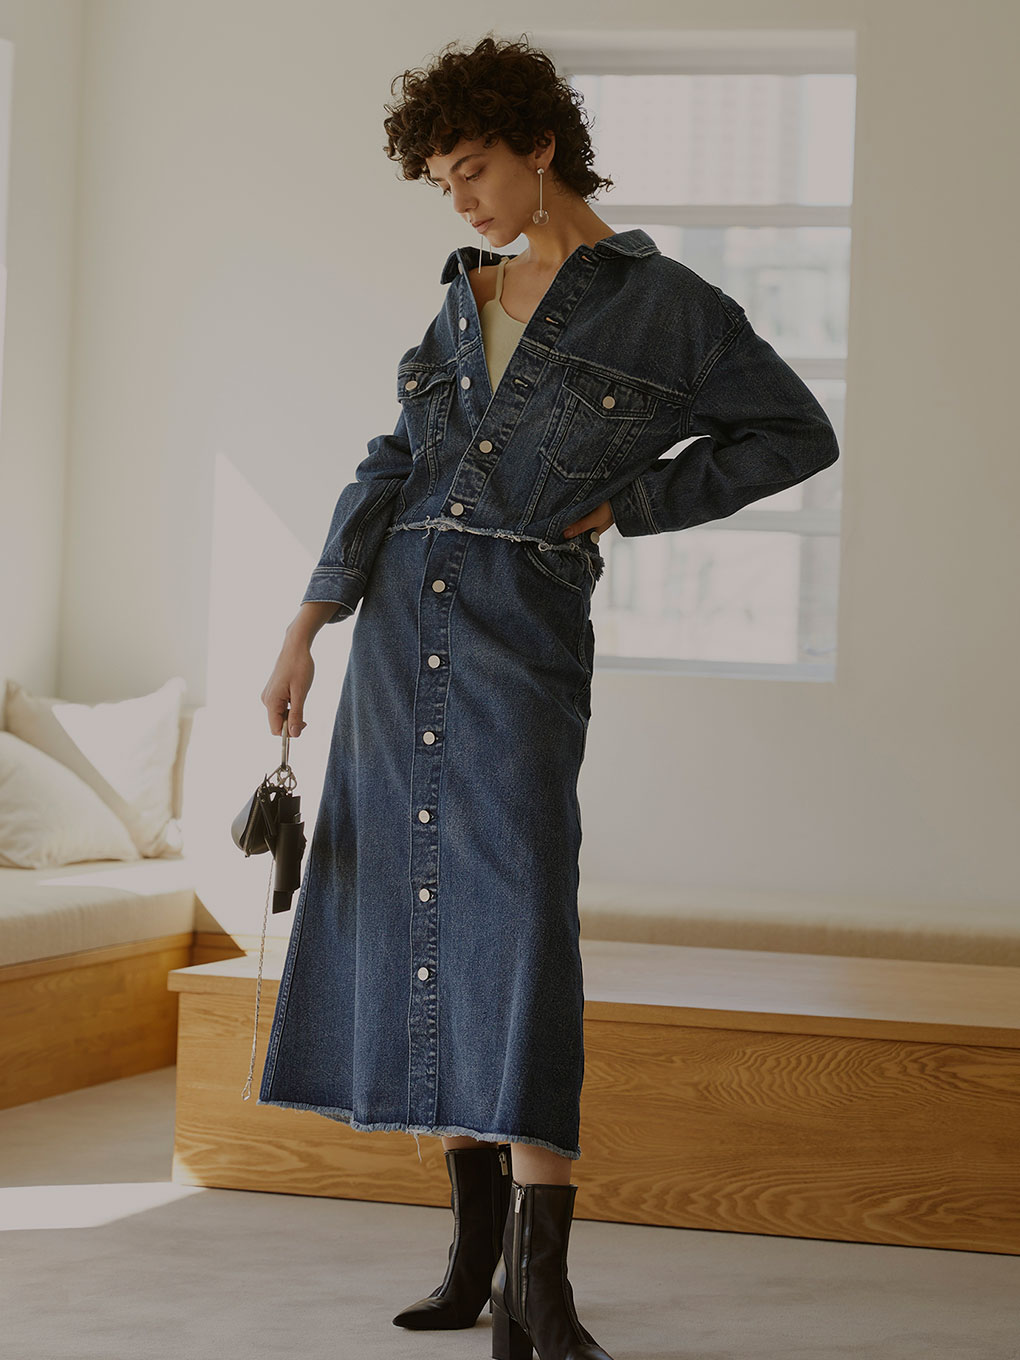 4WAY DENIM DRESS COAT